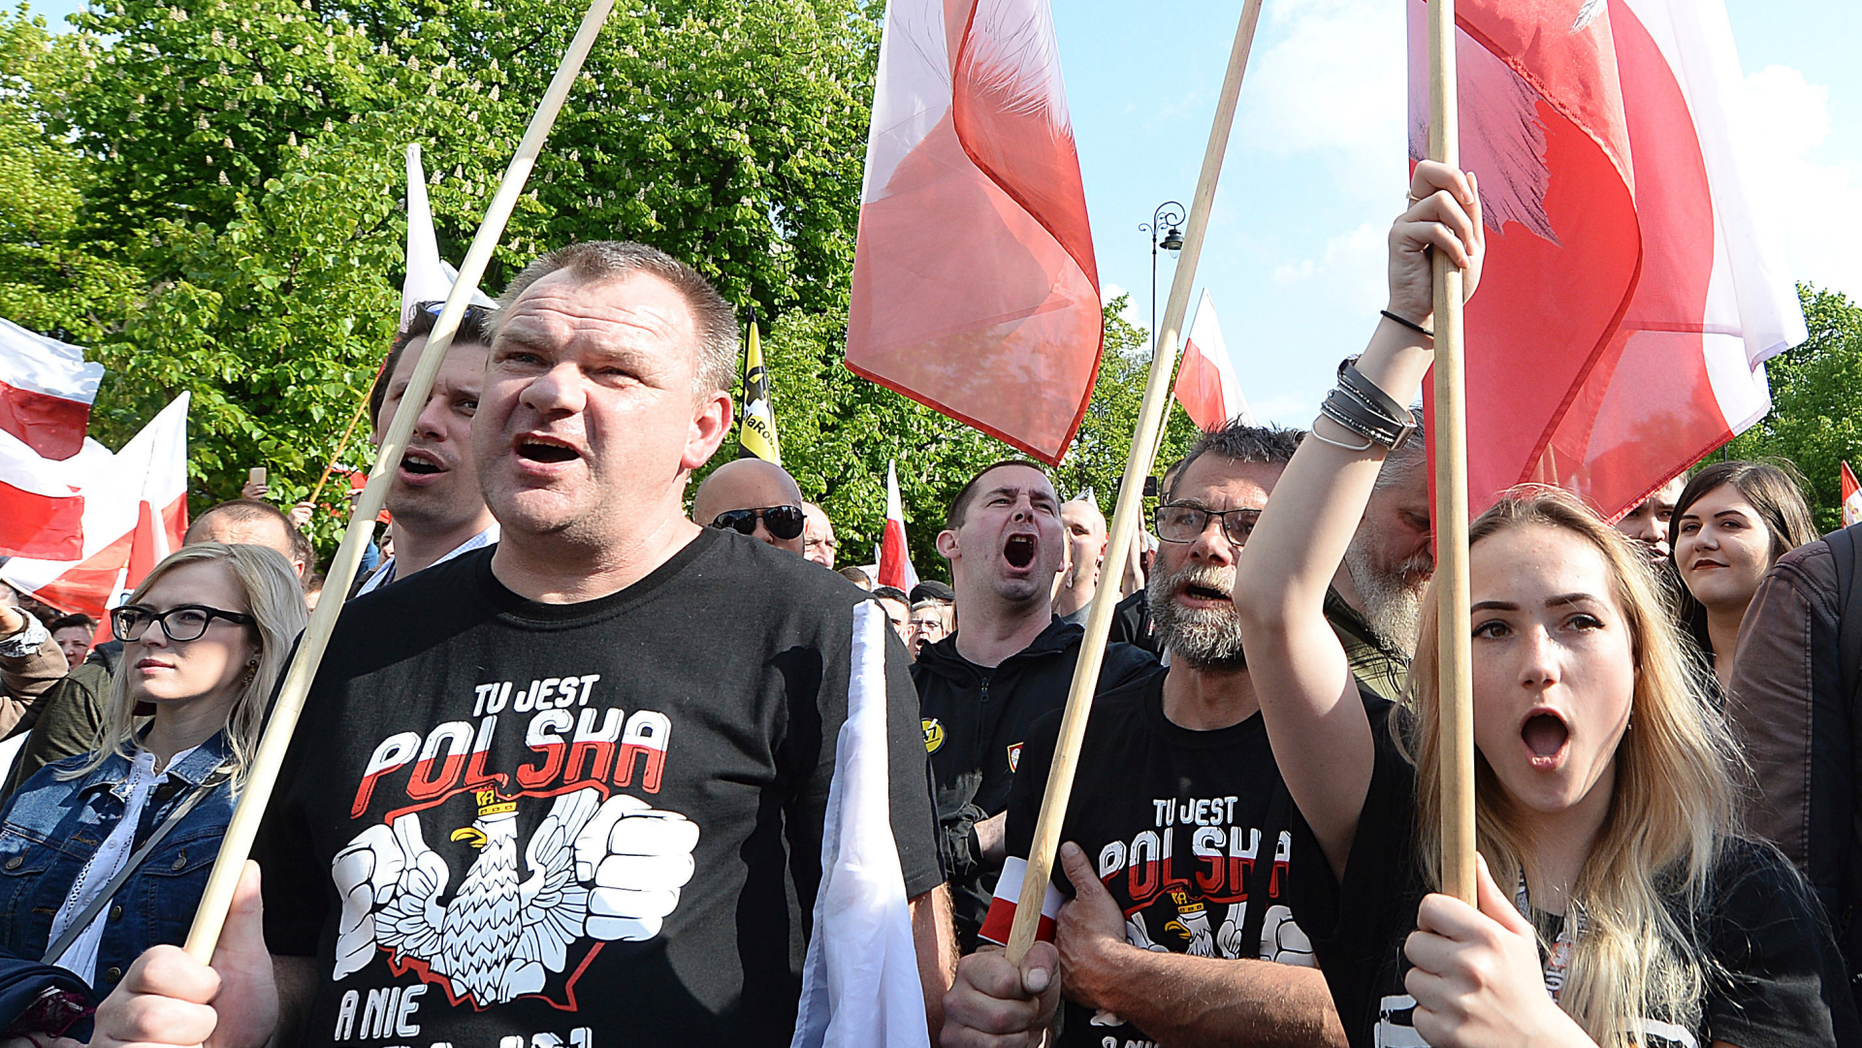 """Thousands of Polish nationalists march to the U.S. Embassy, in Warsaw, Poland, Saturday, May 11, 2019. Thousands of Polish nationalists have marched to the U.S. Embassy in Warsaw, protesting that the U.S. is putting pressure on Poland to compensate Jews whose families lost property during the Holocaust. The protesters included far-right groups and their supporters. They said the United States has no right to interfere in Polish affairs and that the U.S. government is putting """"Jewish interests"""" over the interests of Poland. The T-shirts read in Polish """"This is Poland not Polin"""" (AP Photo/Czarek Sokolowski)"""